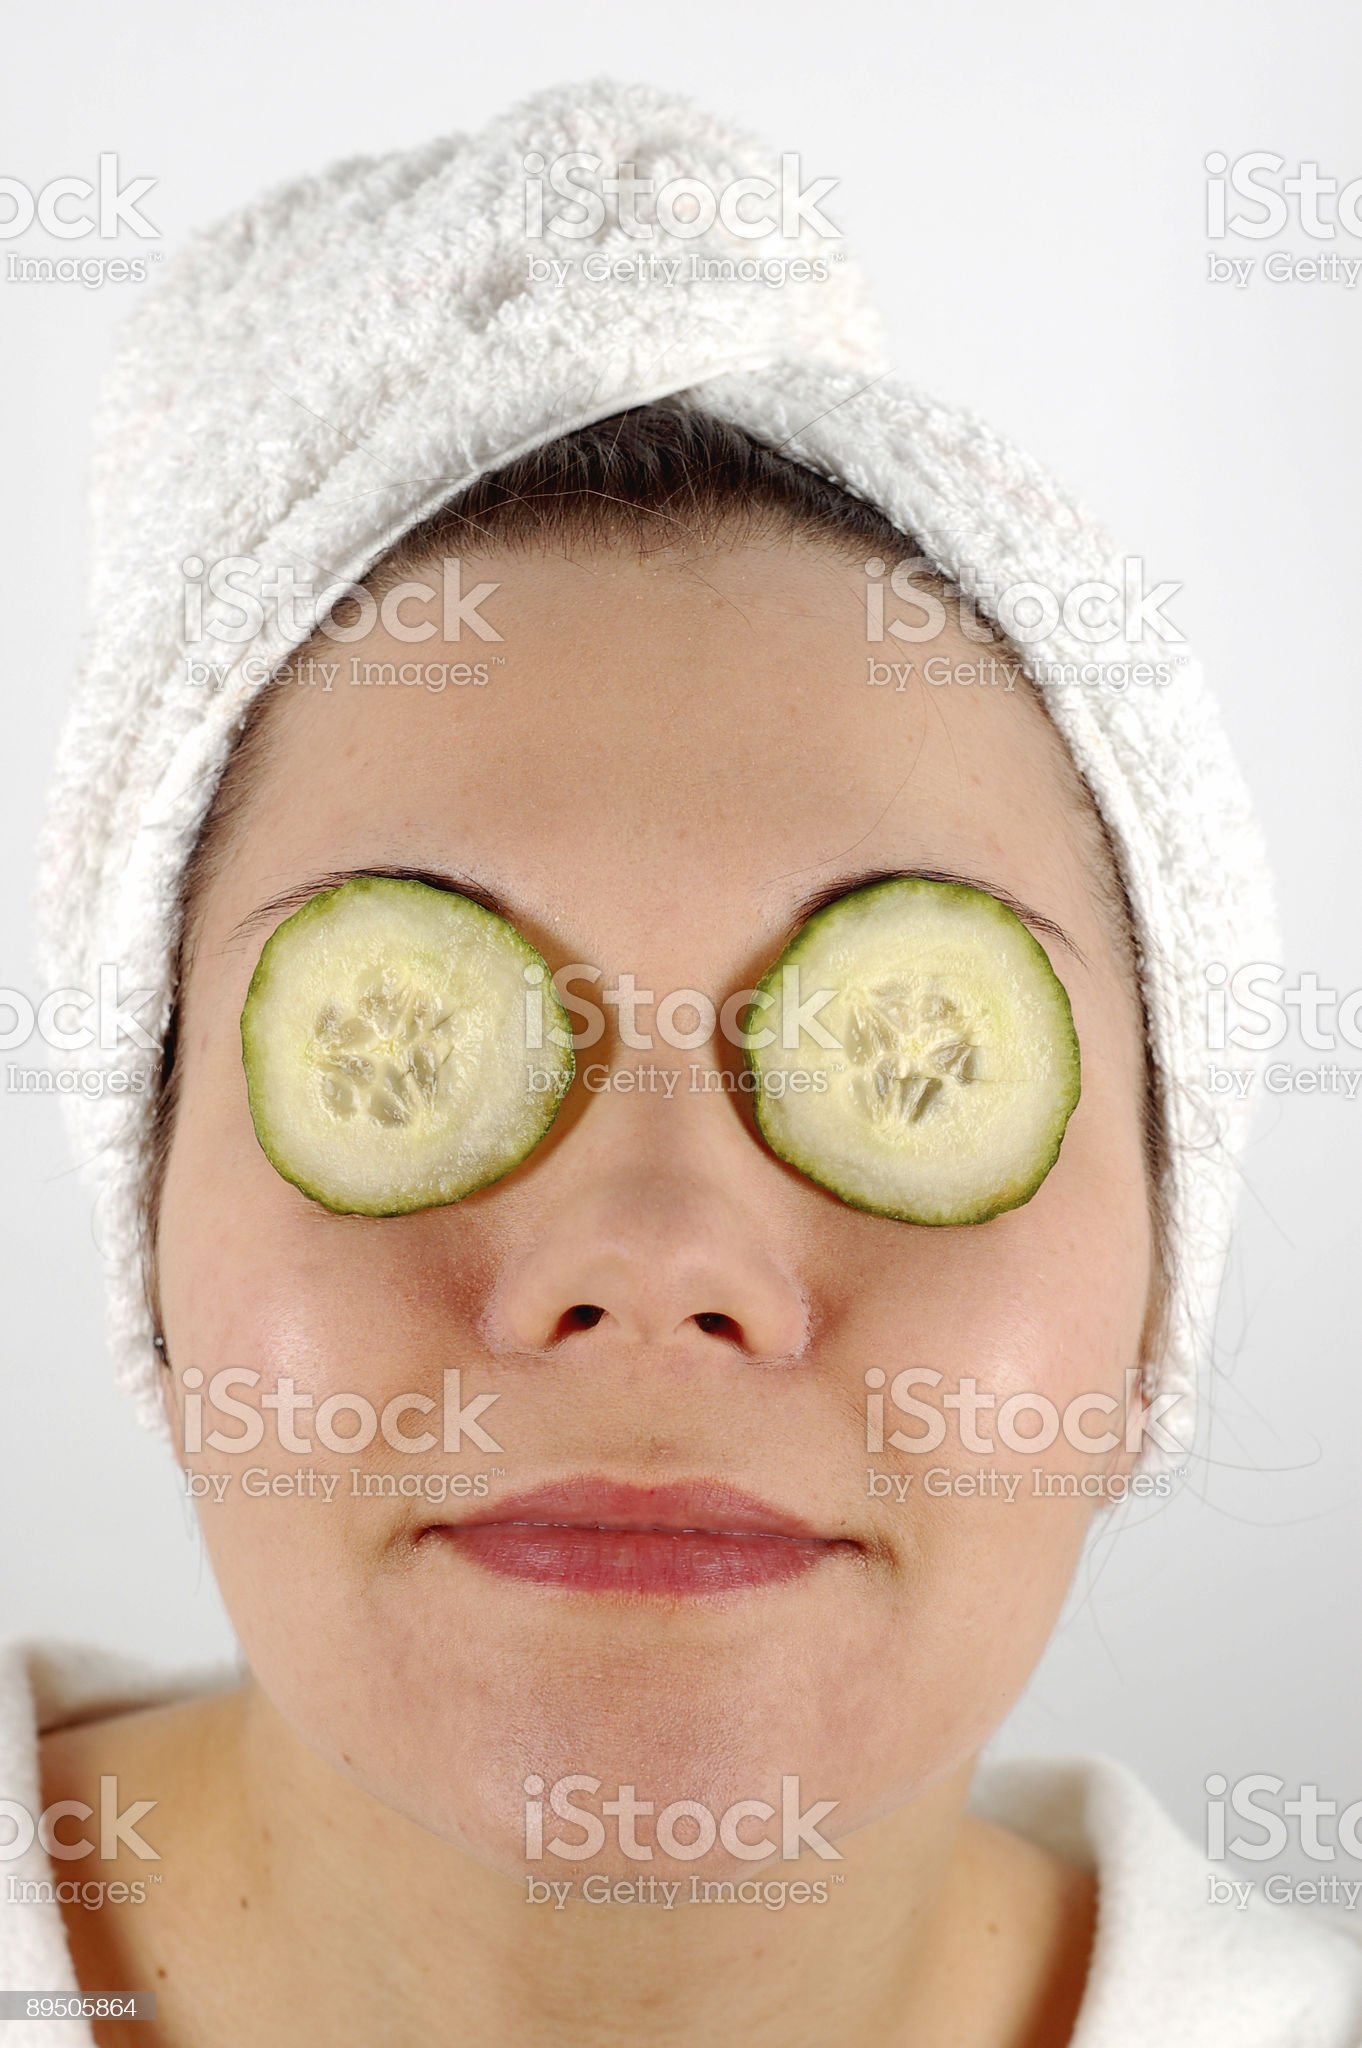 eye rest royalty-free stock photo